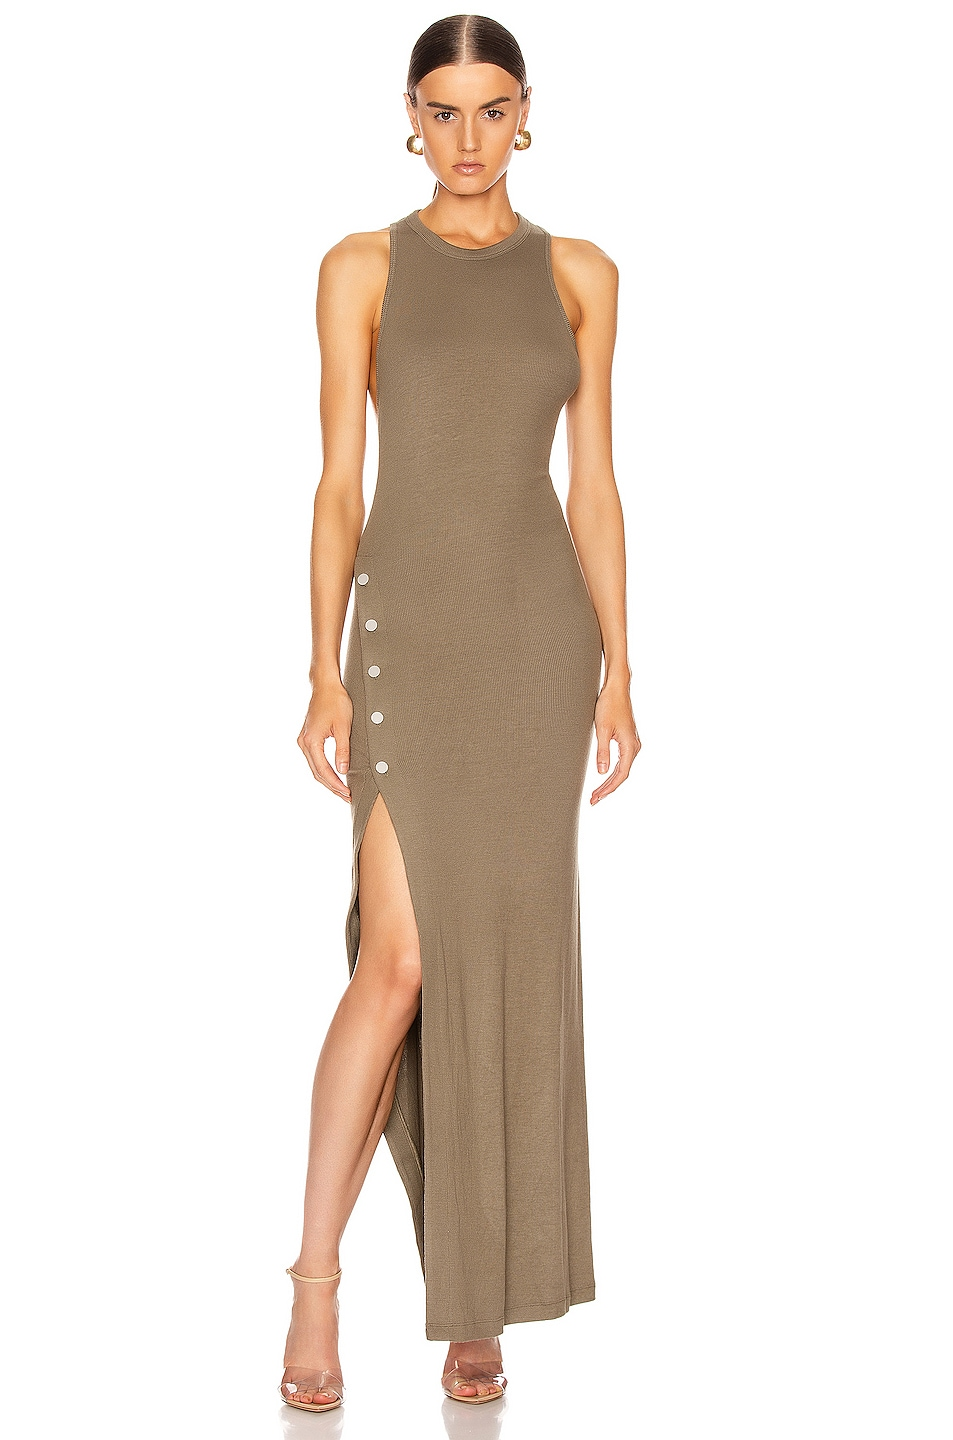 Image 1 of ALIX NYC Beekman Dress in Army